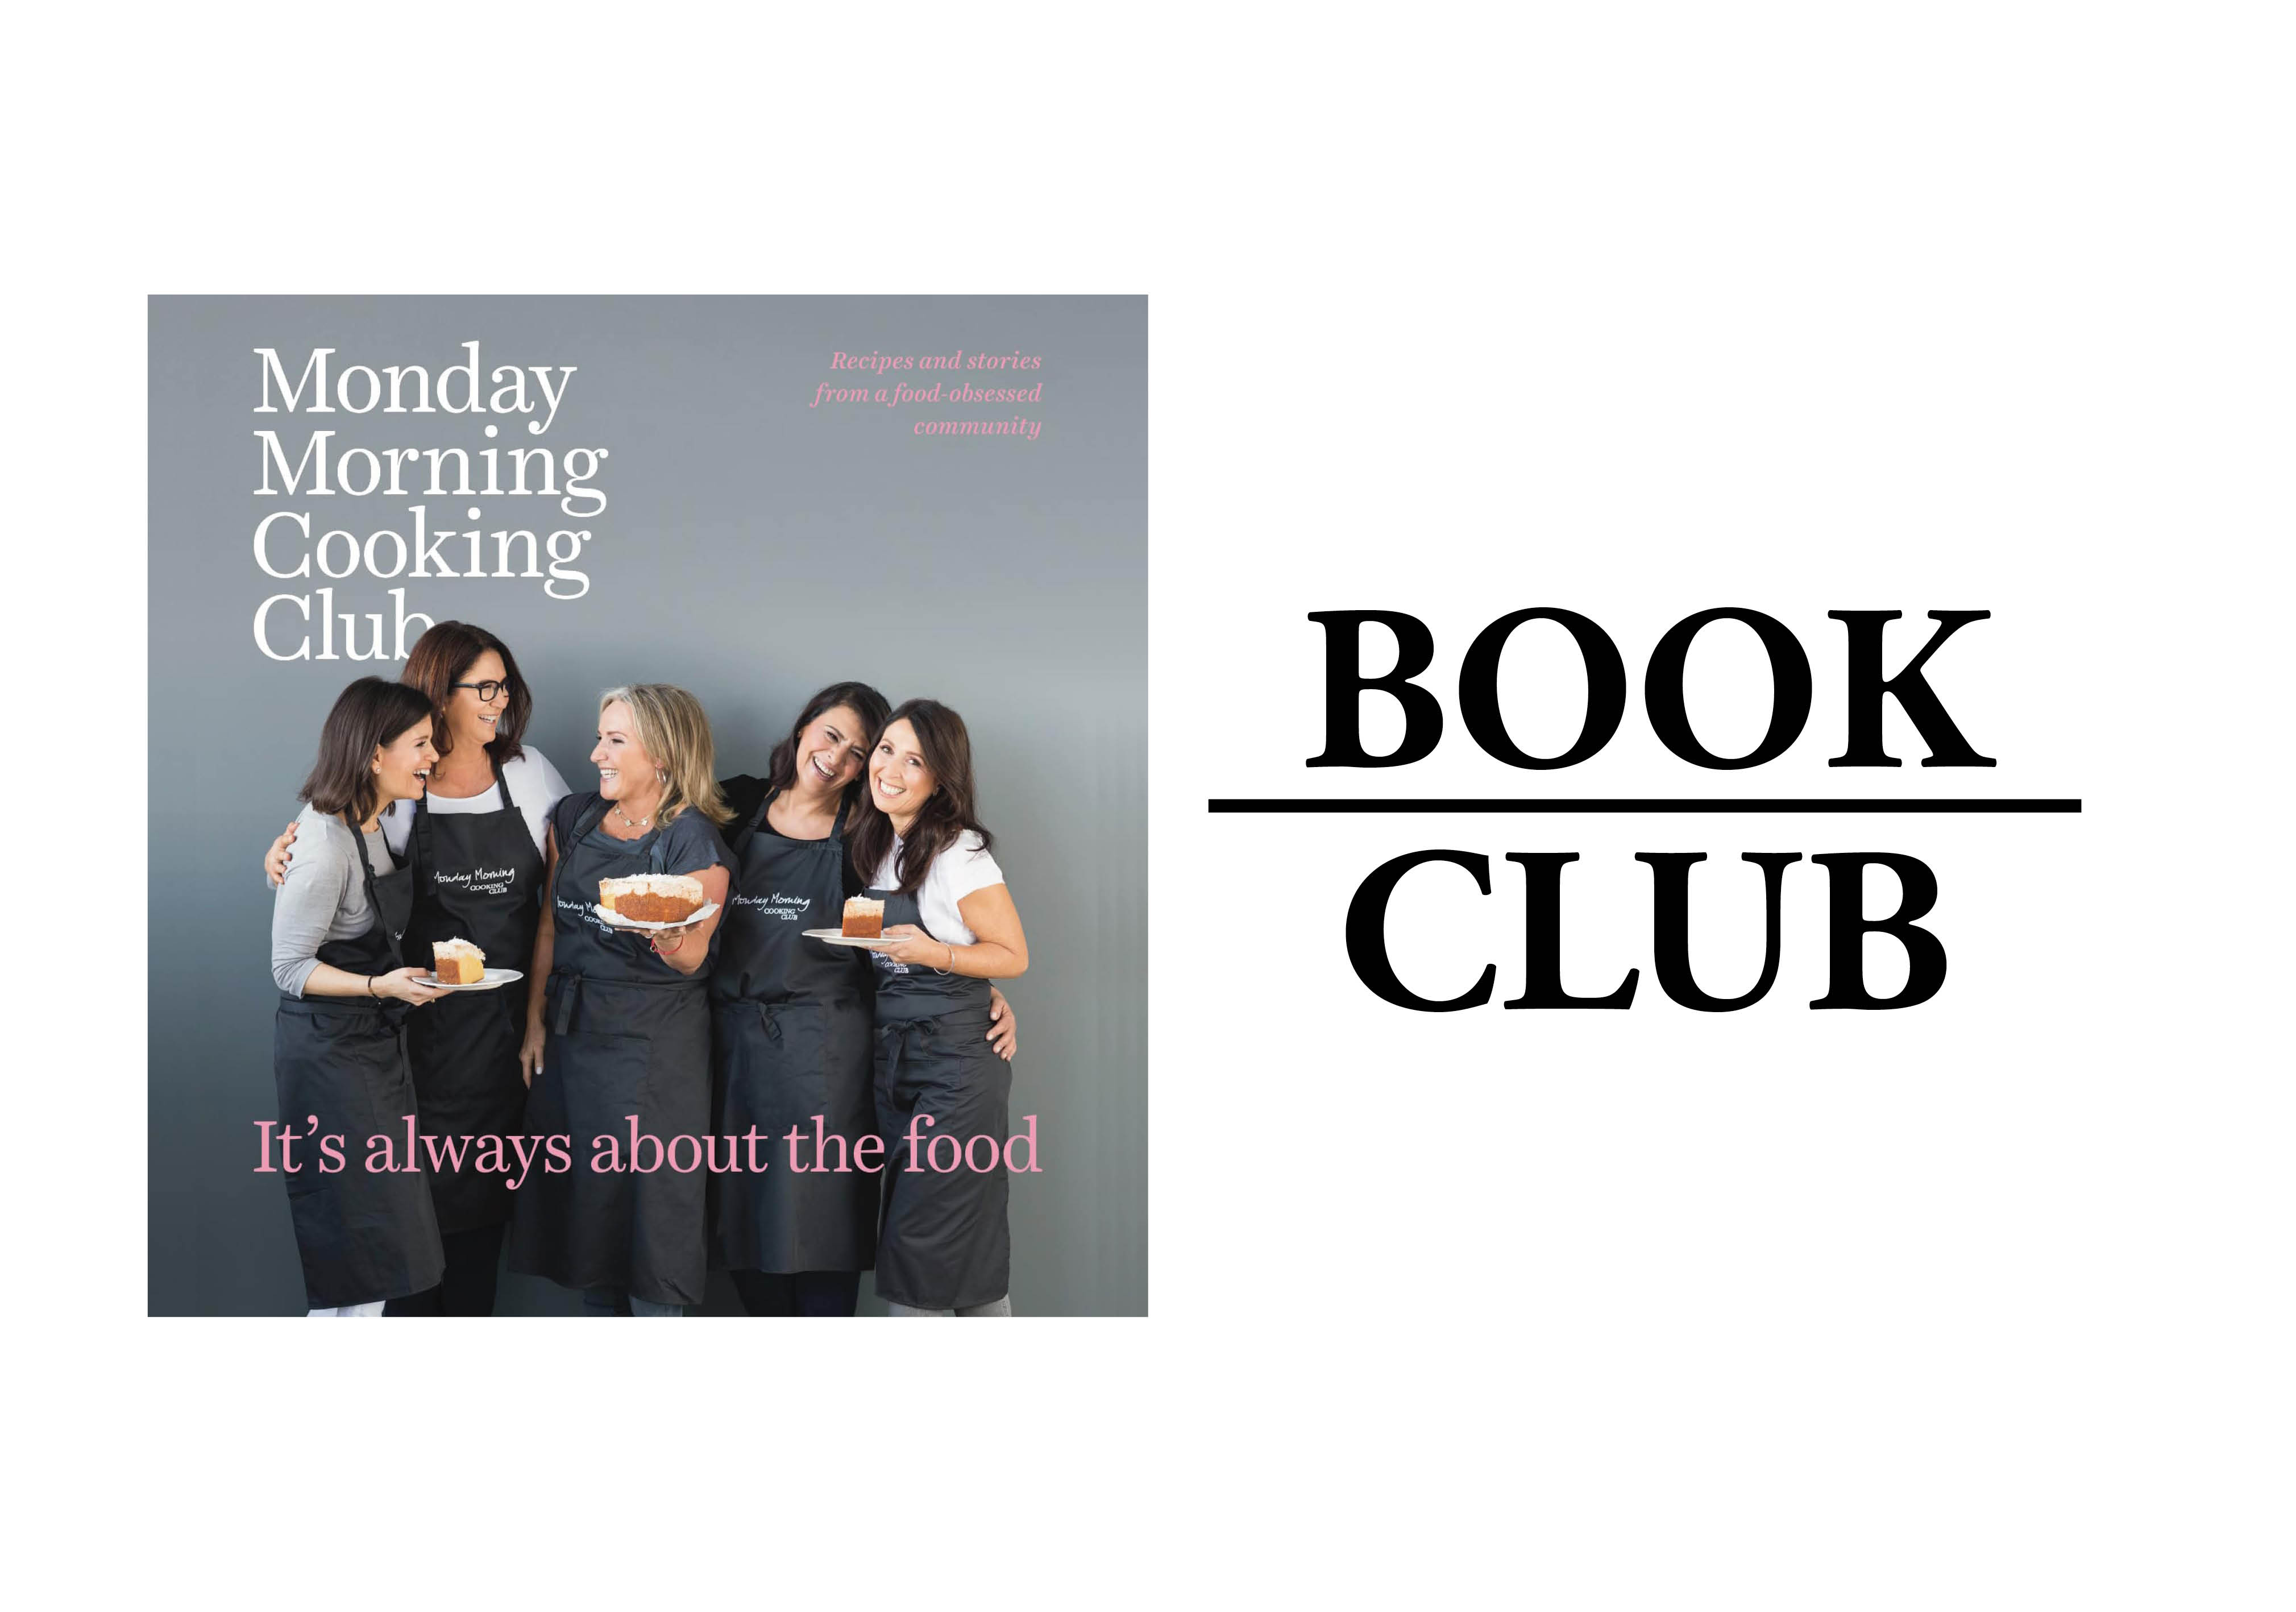 After Ten Years And Two Best Selling Cookbooks The Unstoppable Monday Morning Cooking Club Returns With A Third Book Containing Heirloom Recipes New